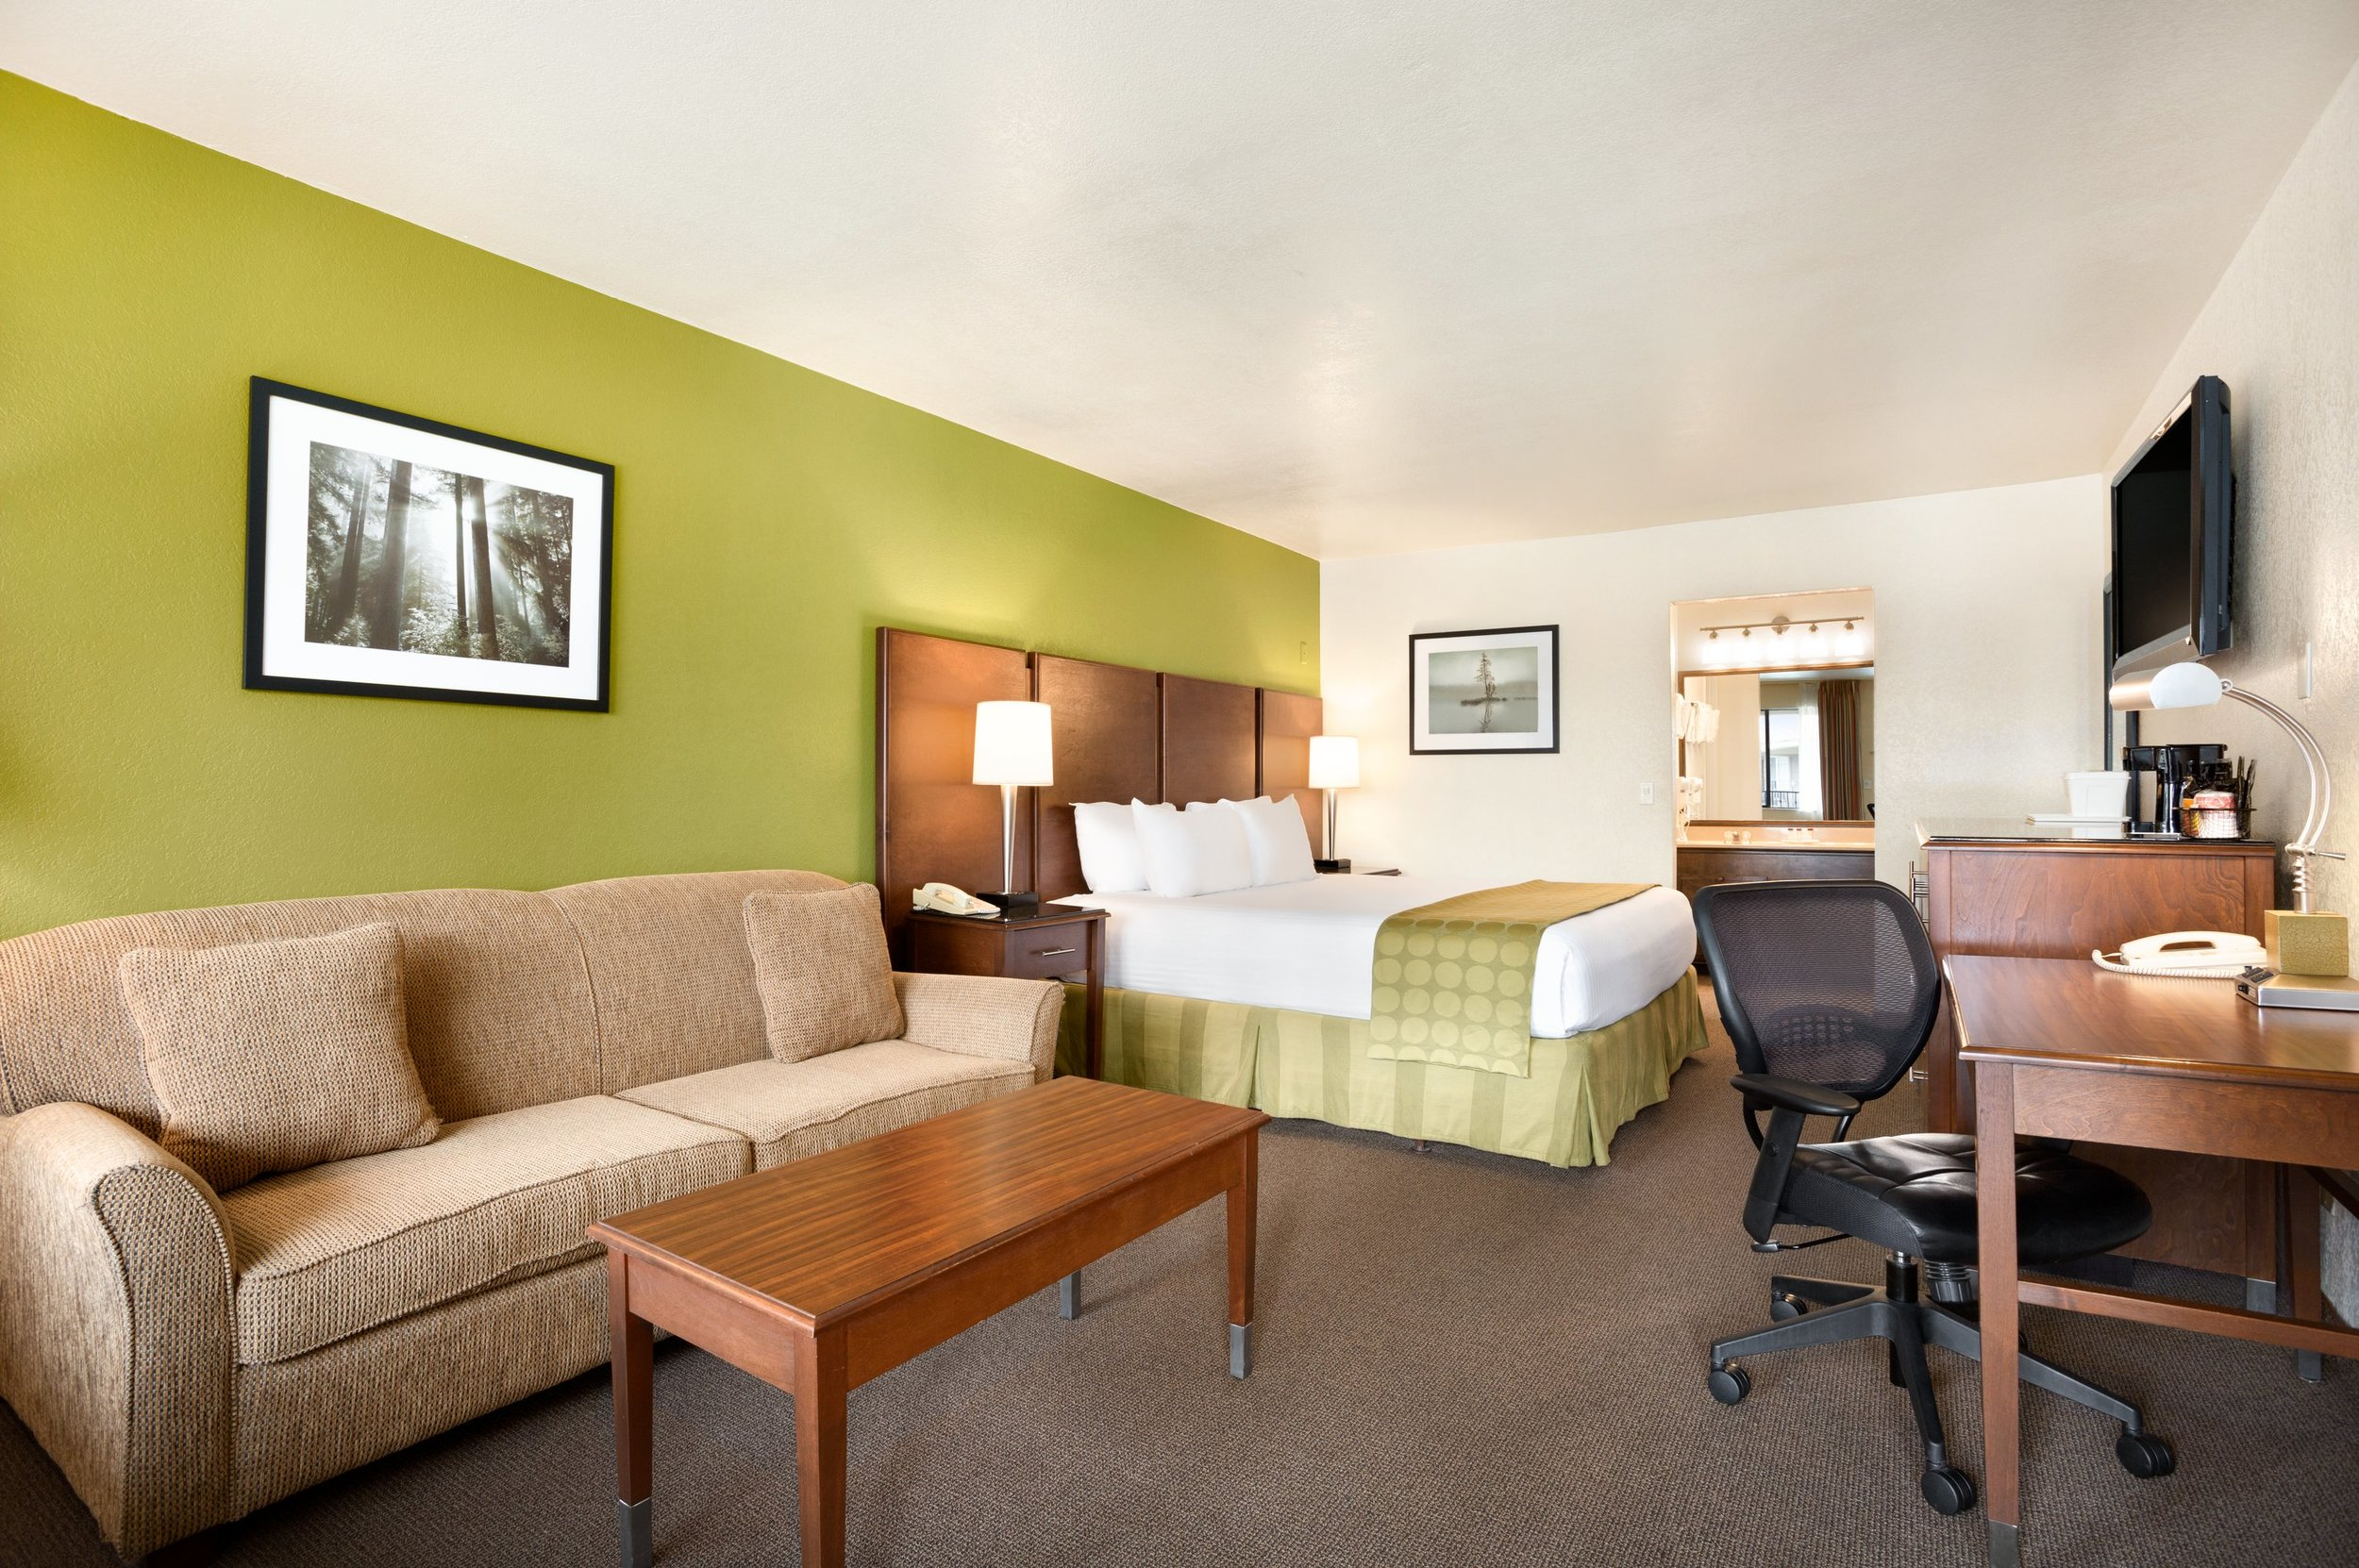 In-Room and On-Site Amenities - Our accommodations in San Diego are stocked with a ton of in-room amenities designed to make your stay with us as comfortable and convenient as possible. Enjoy complimentary Wi-Fi, flat-screen TVs, and a work desk in each room! Spend the day in the beautiful California sun at our outdoor pool, or work up a sweat in our fitness center. Guests can also stroll down to our onsite restaurant, Proud Mary's Southern Bar & Grill for a delicious meal and some live music!Book your stay in one of our charming hotel rooms in San Diego, CA today to enjoy a relaxing Southern California getaway at an affordable rate!The Ramada Hotel & Conference Center San Diego is a non-smoking hotel.